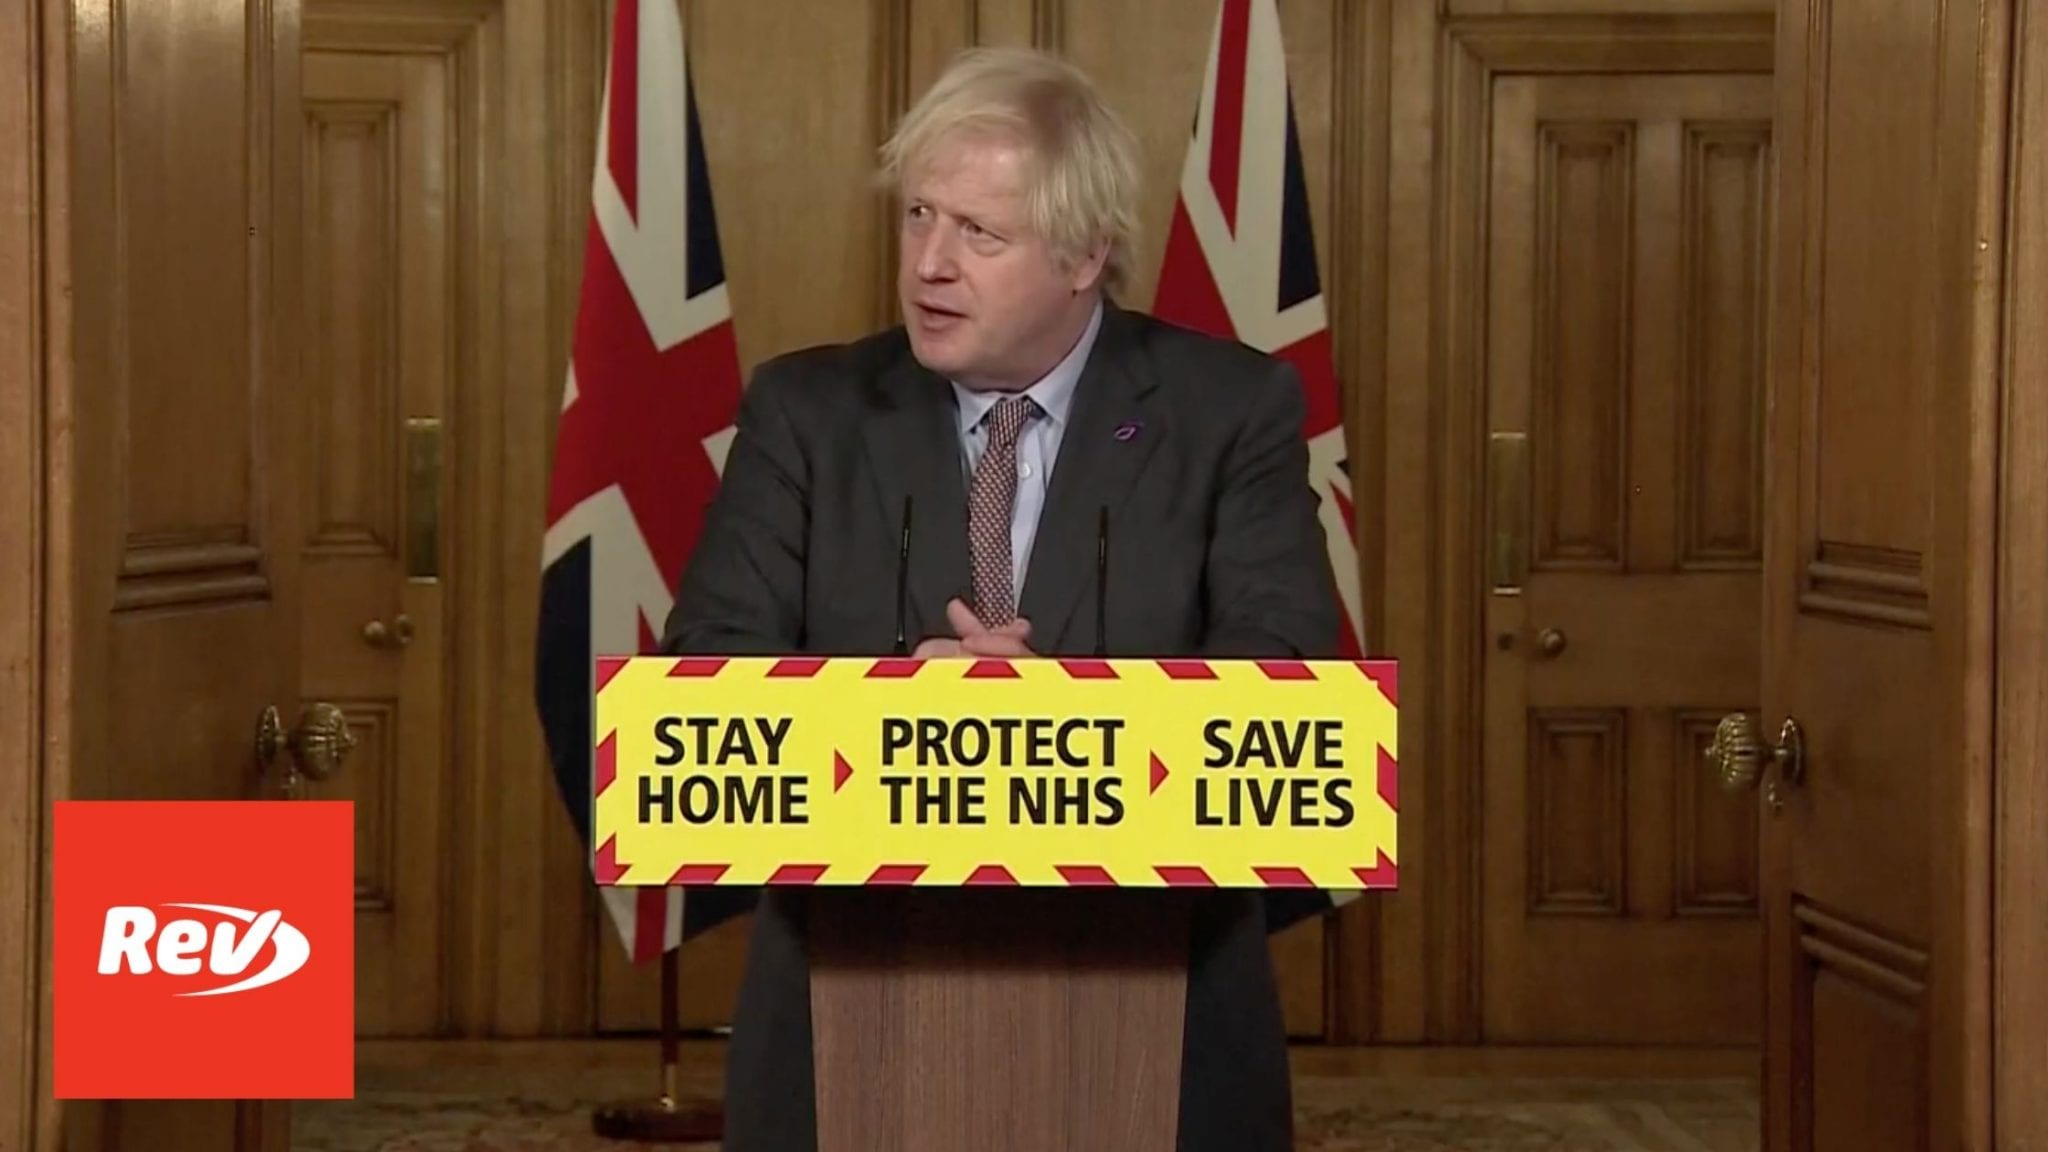 Boris Johnson COVID-19 Press Conference Transcript January 27